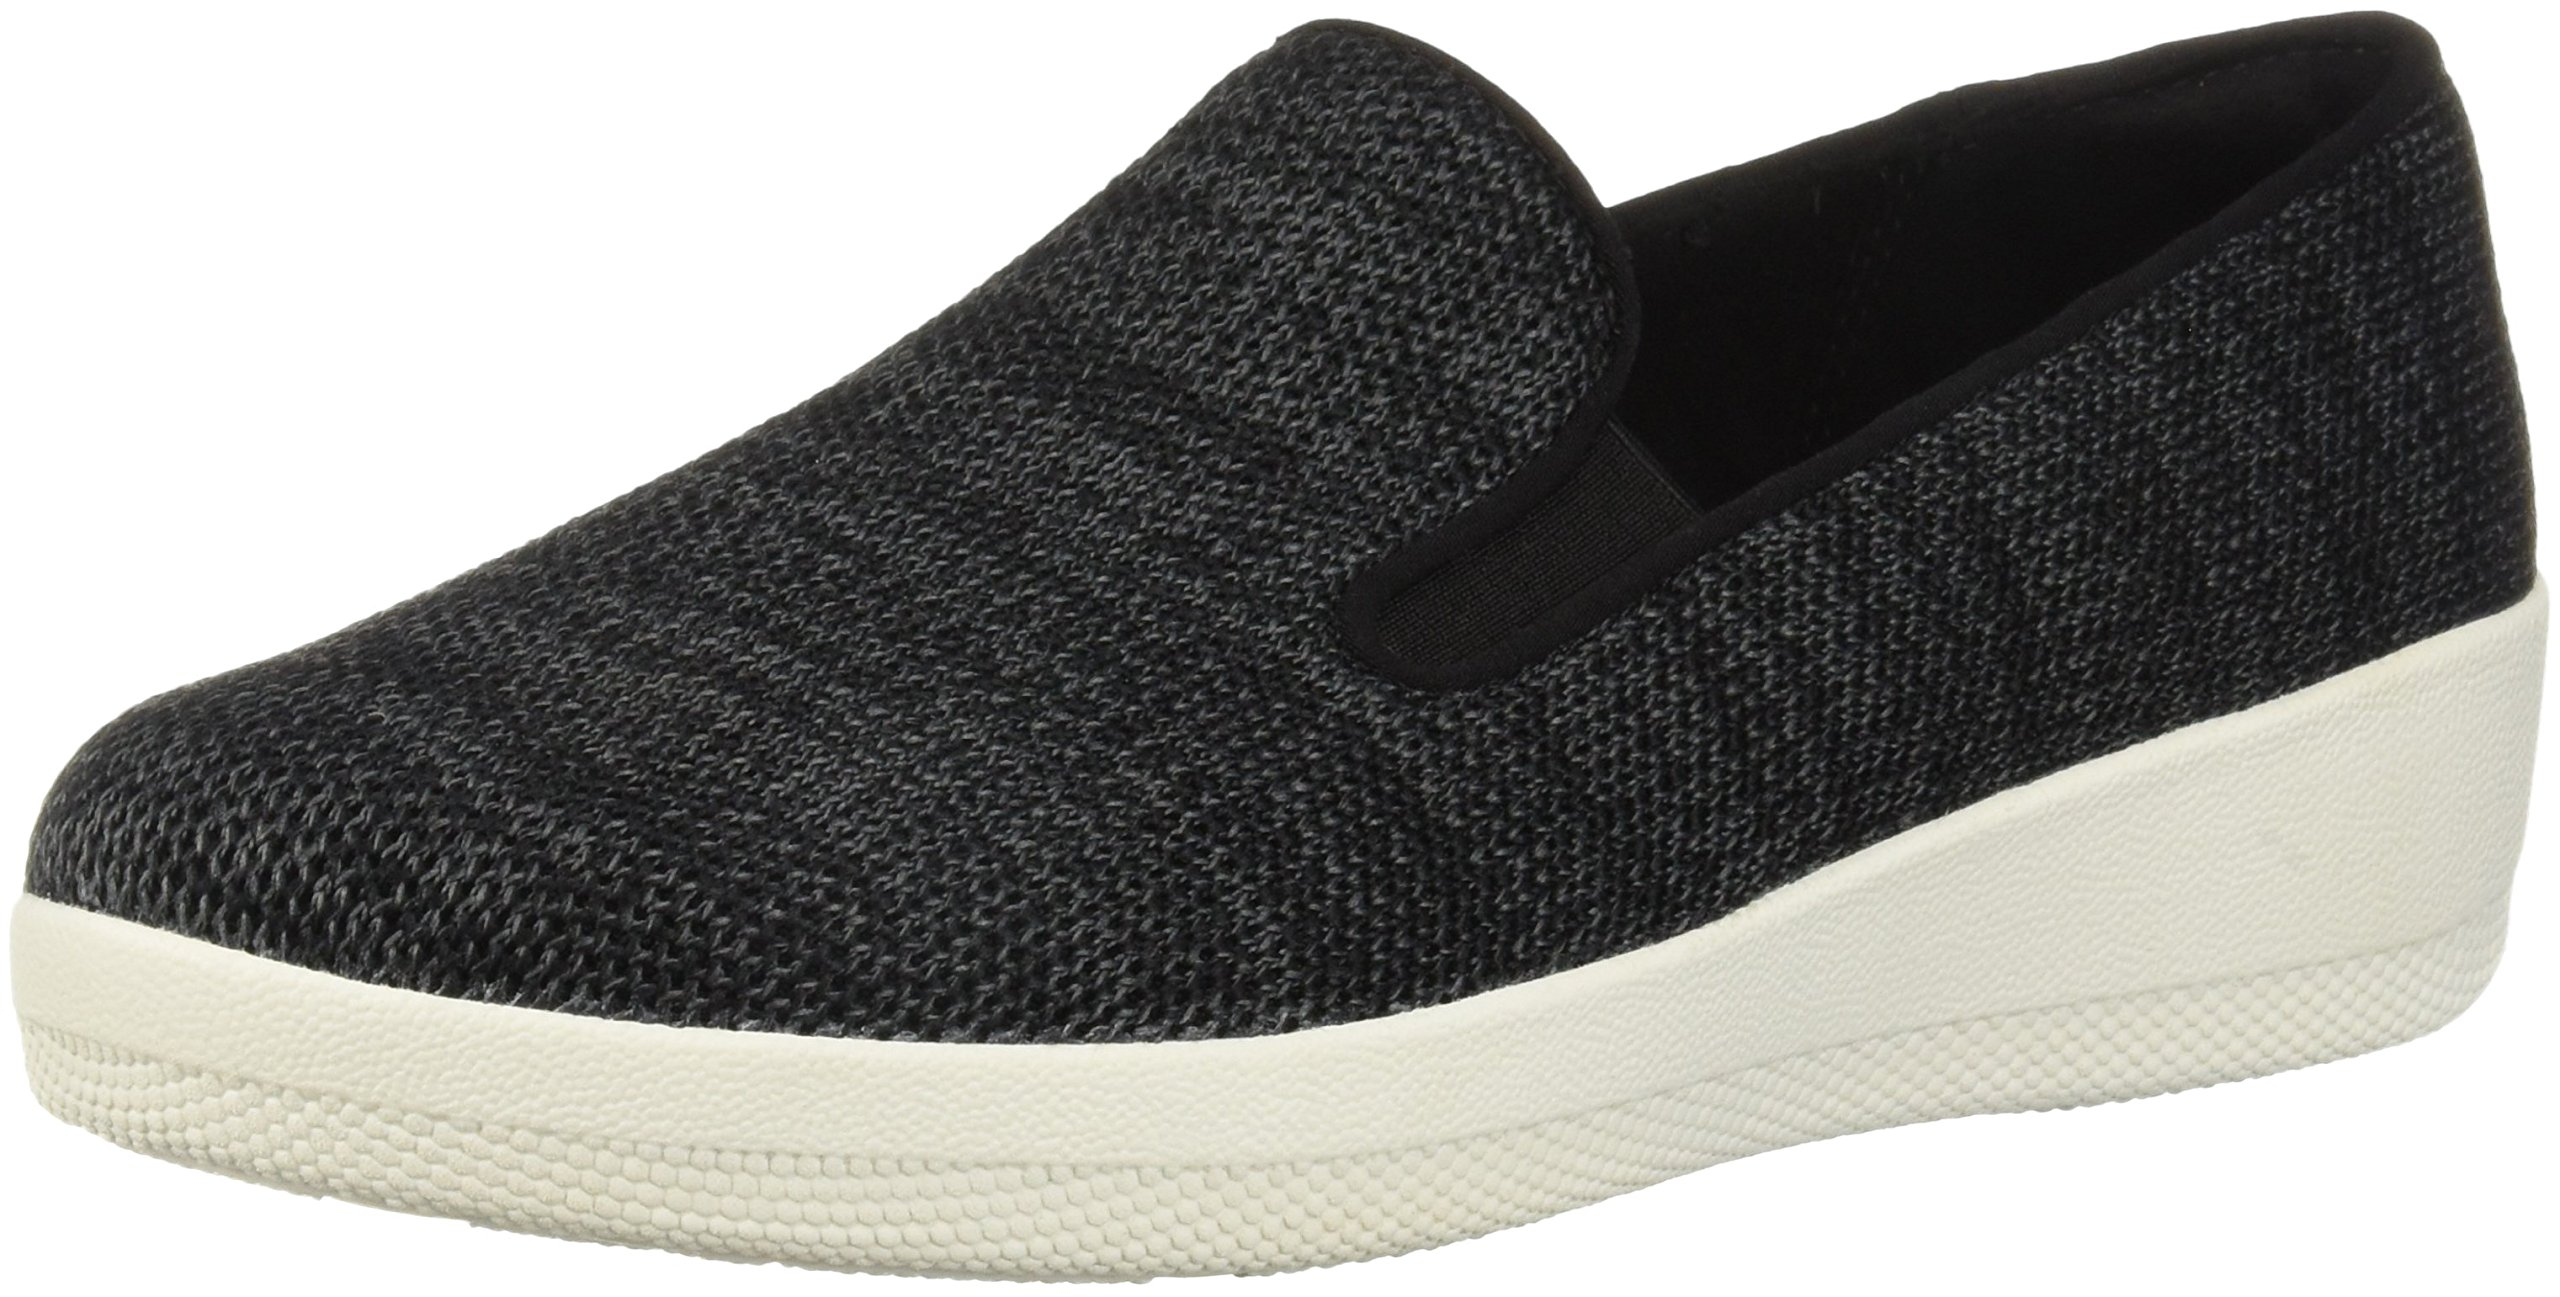 FitFlop Women's Superskate Uberknit Loafers, Black/Soft Grey, 8.5 M US